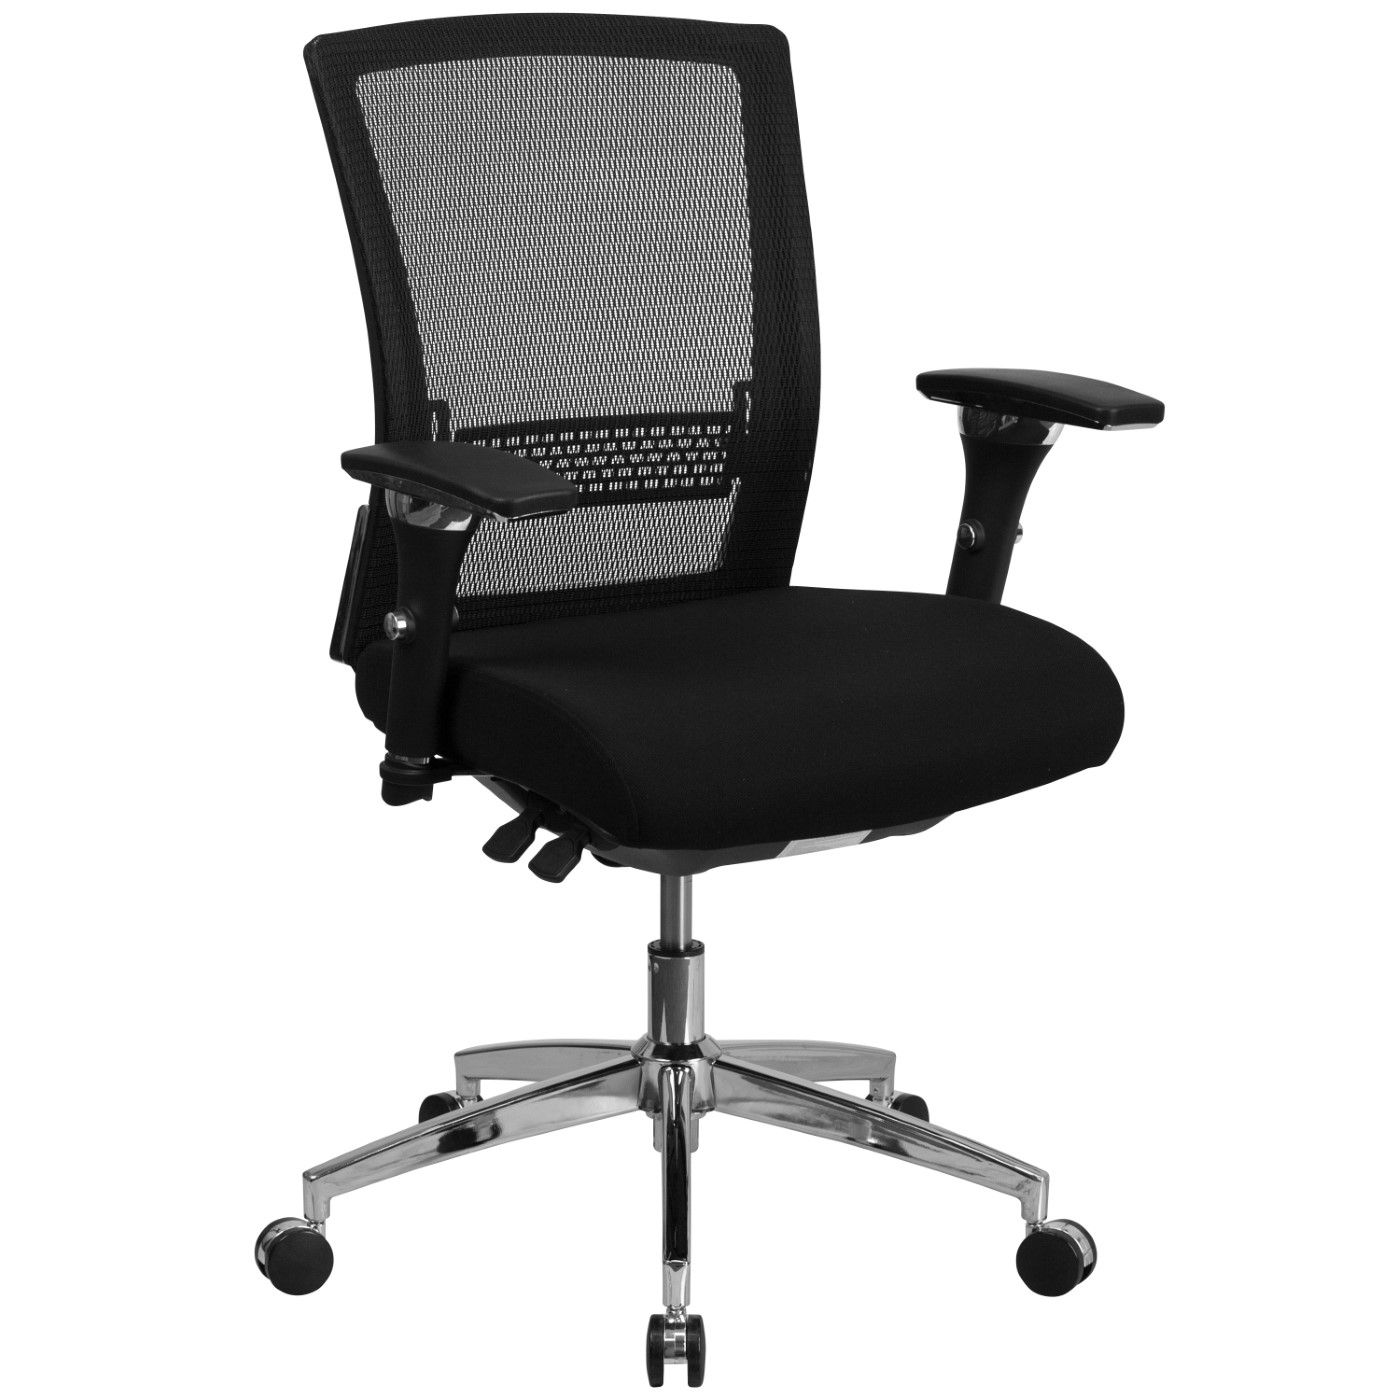 TOUGH ENOUGH Series 24/7 Intensive Use 300 lb. Rated Black Mesh Multifunction Ergonomic Office Chair with Seat Slider